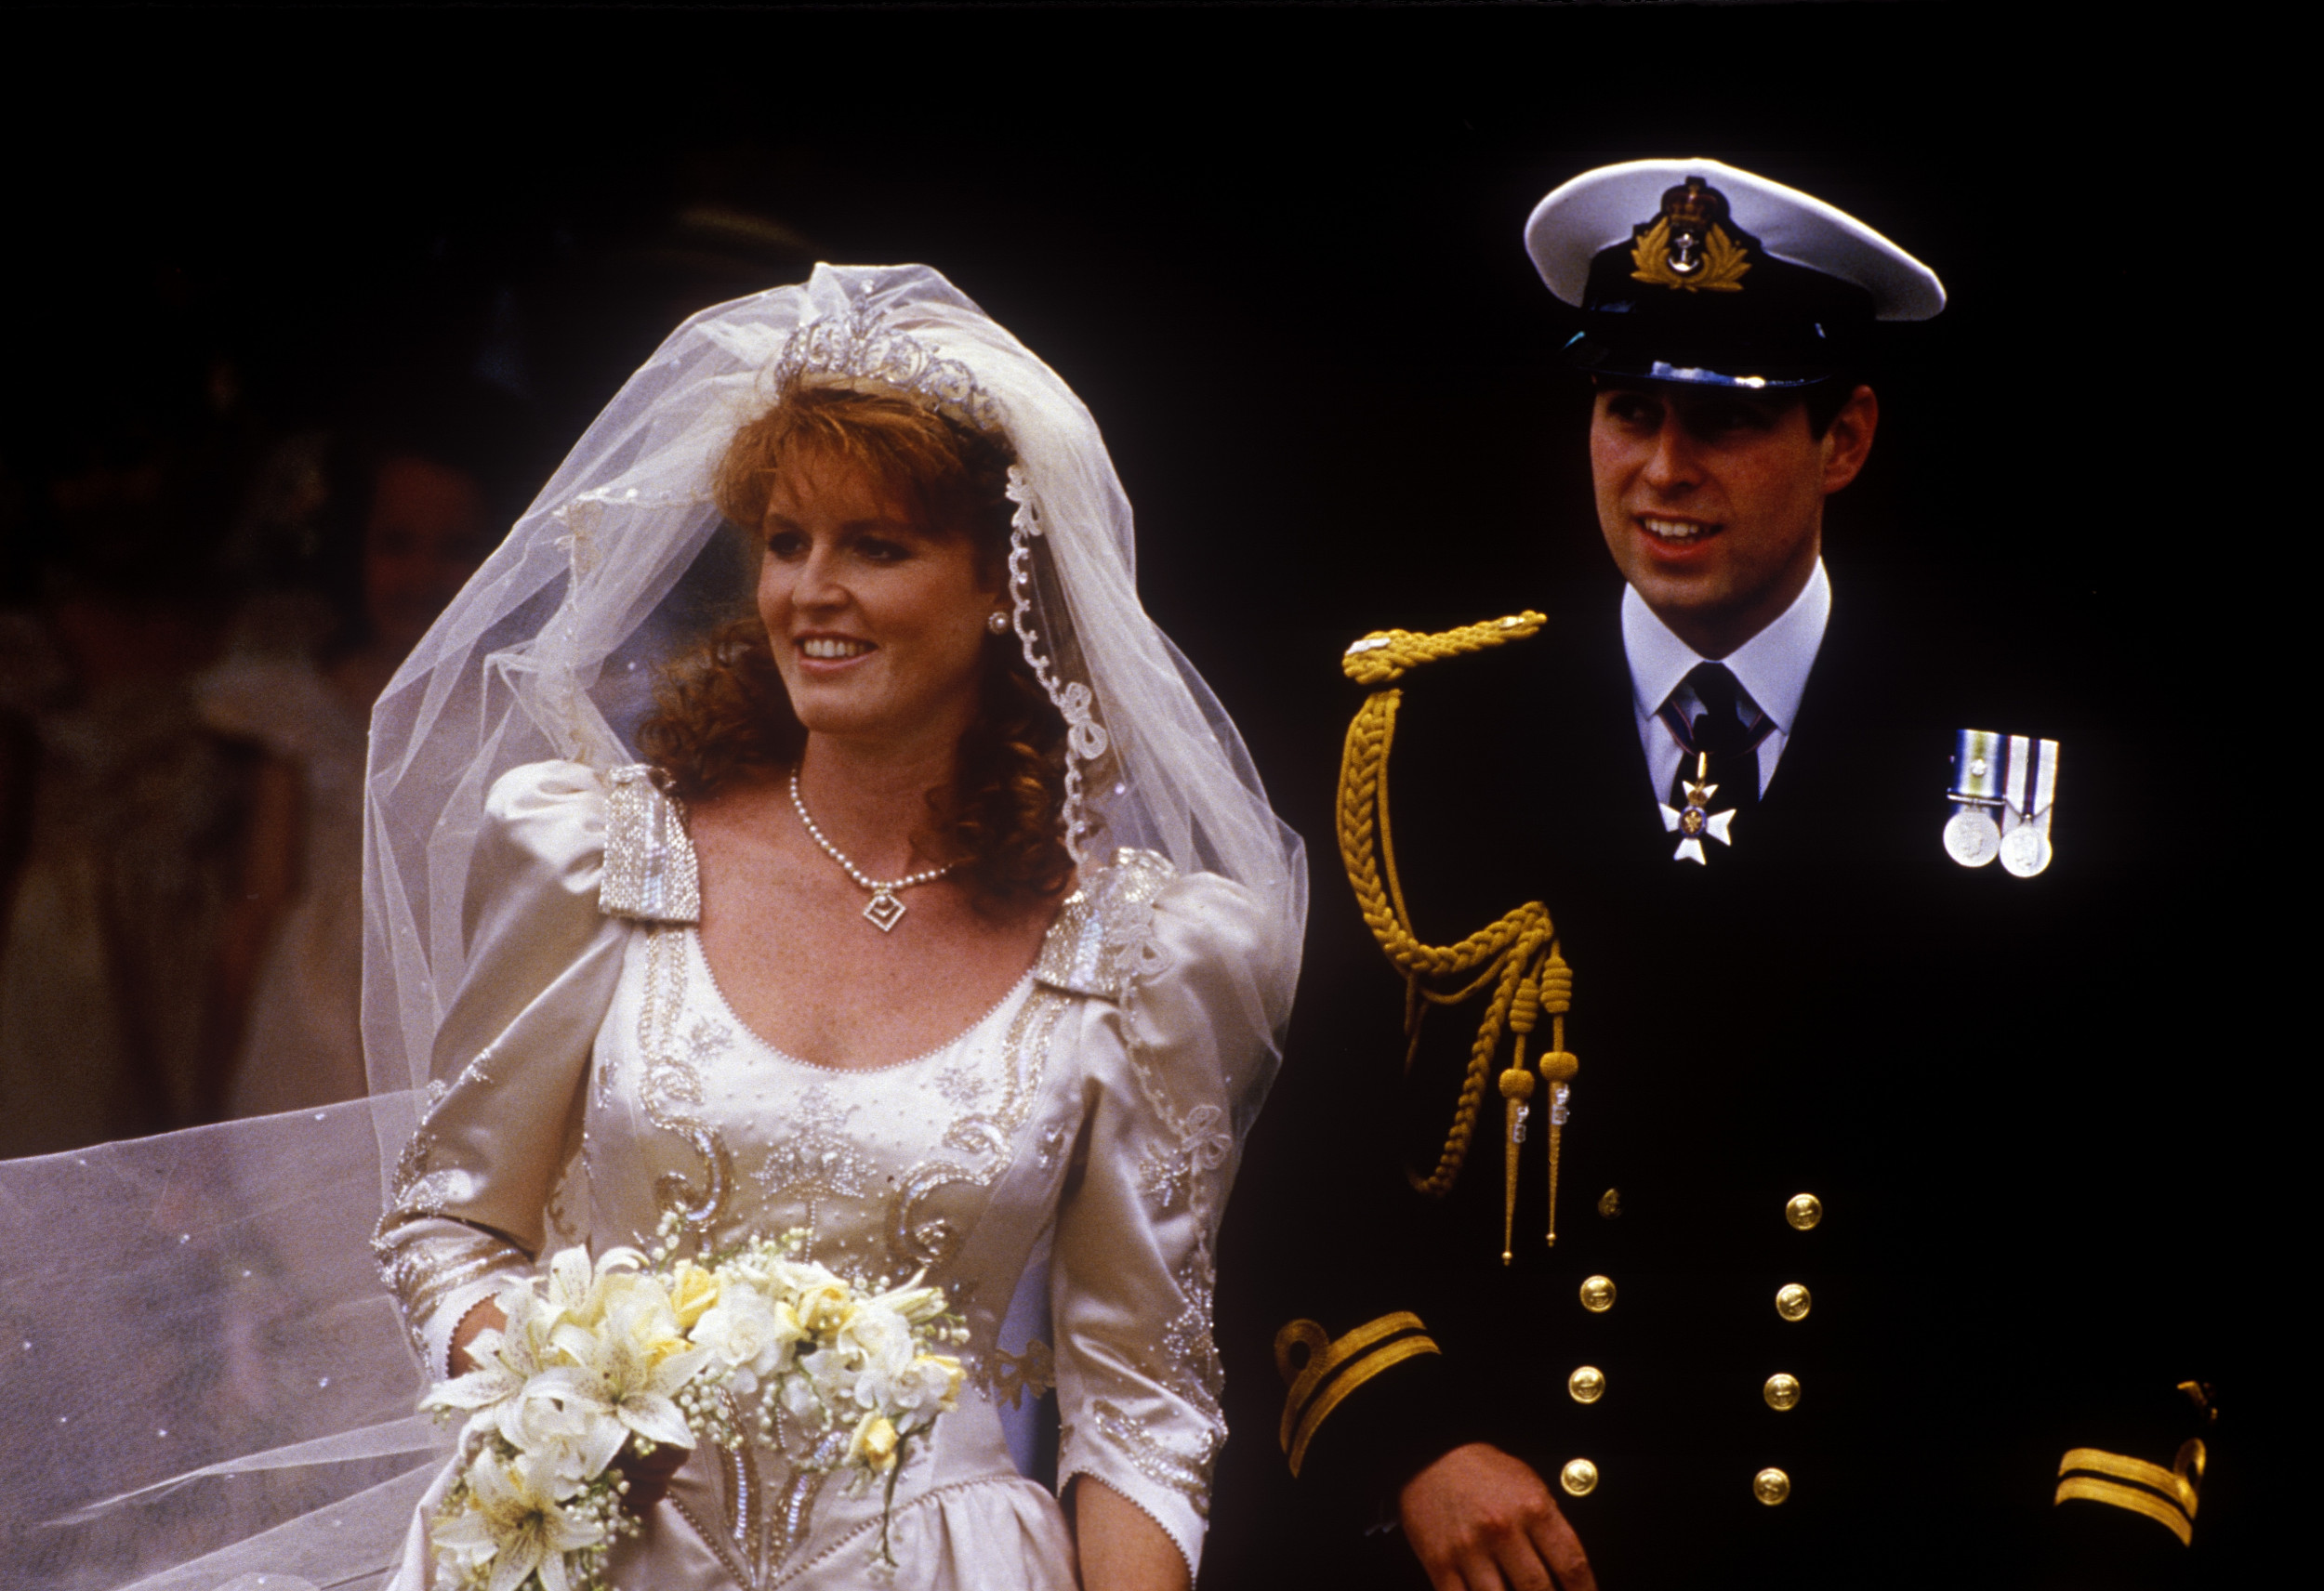 How Sarah Ferguson S Money Troubles Made Prince Andrew S Jeffrey